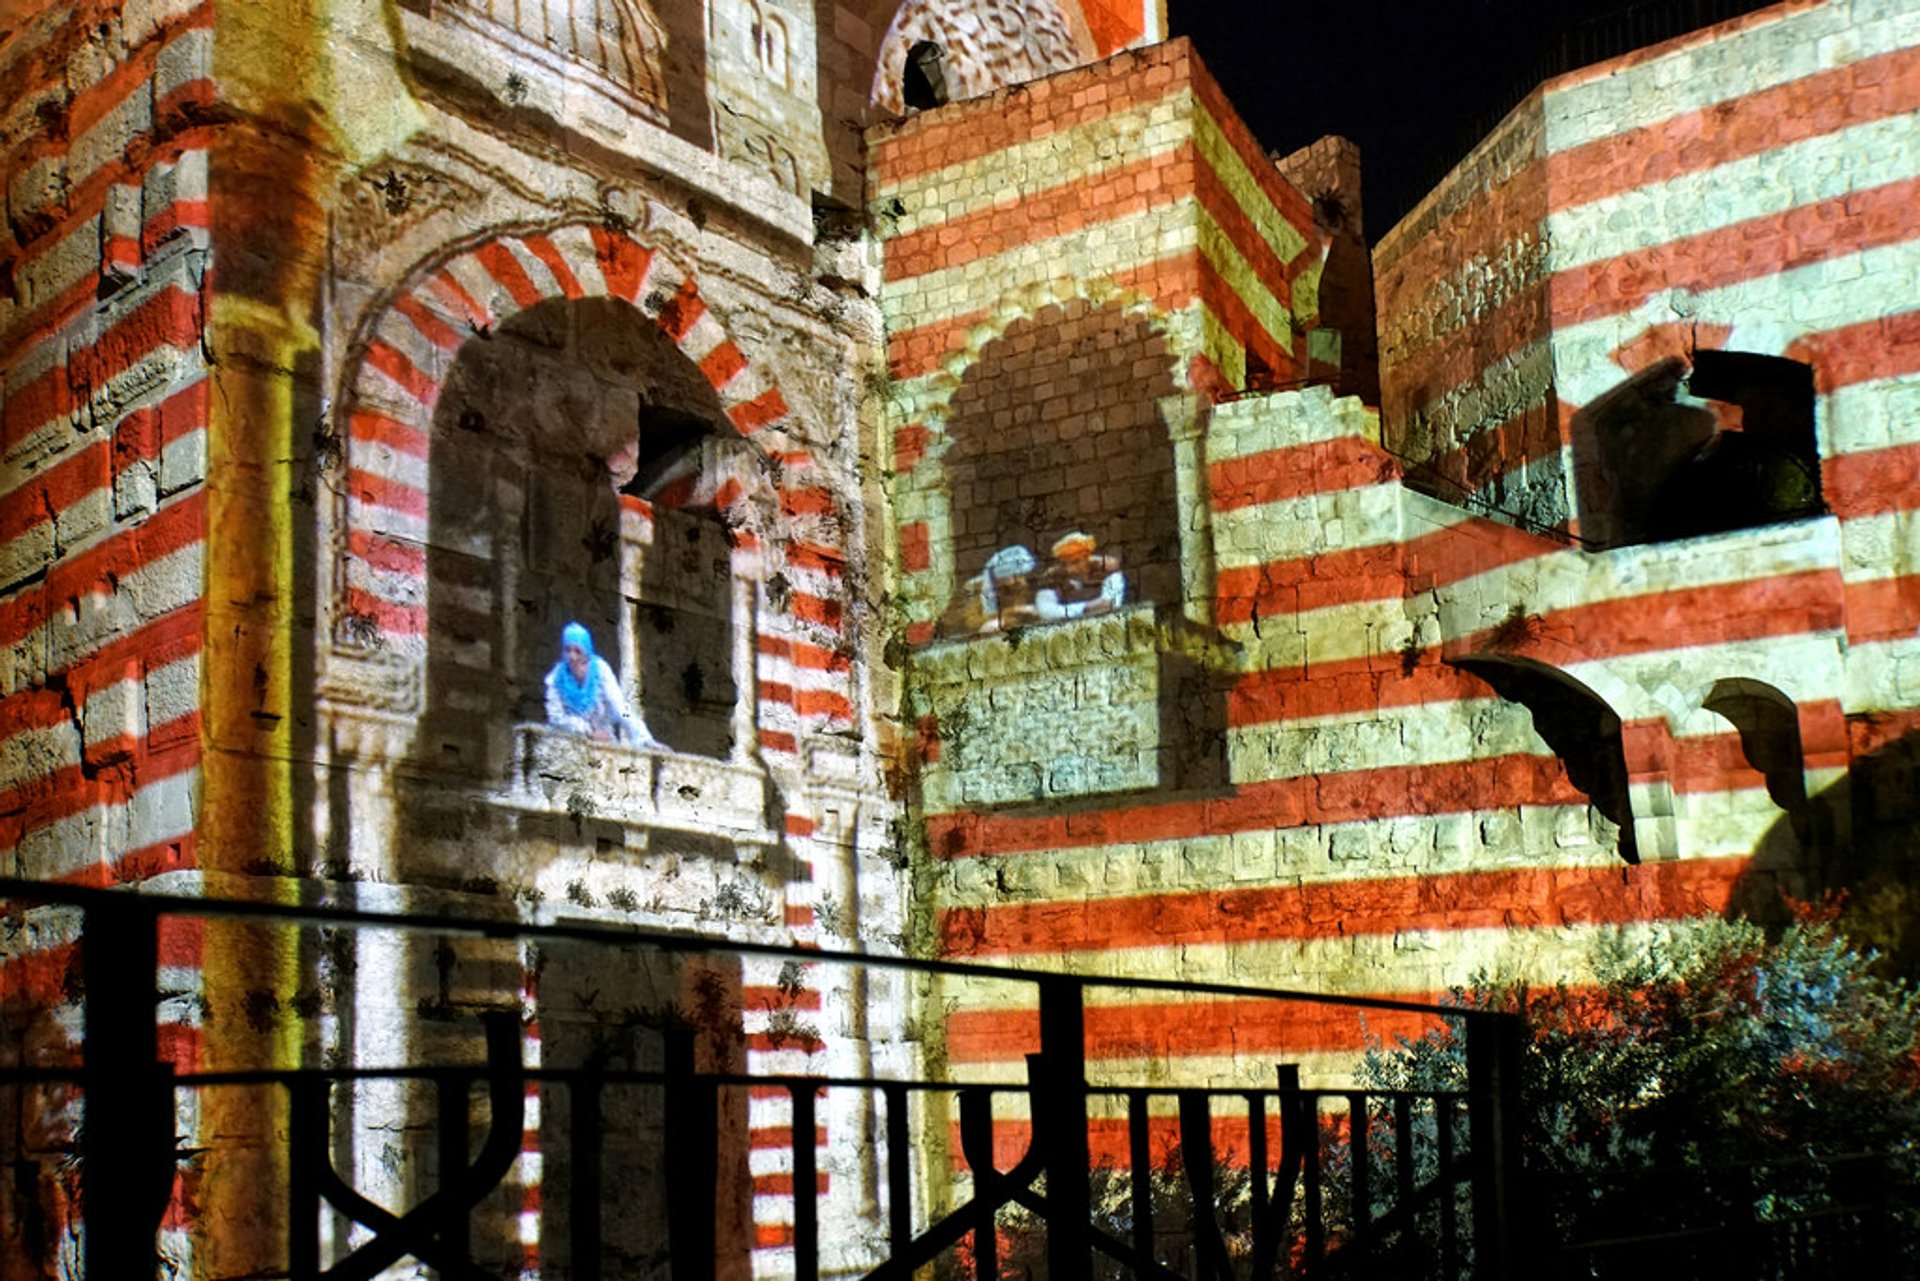 Tower of David Night Shows in Jerusalem 2020 - Best Time